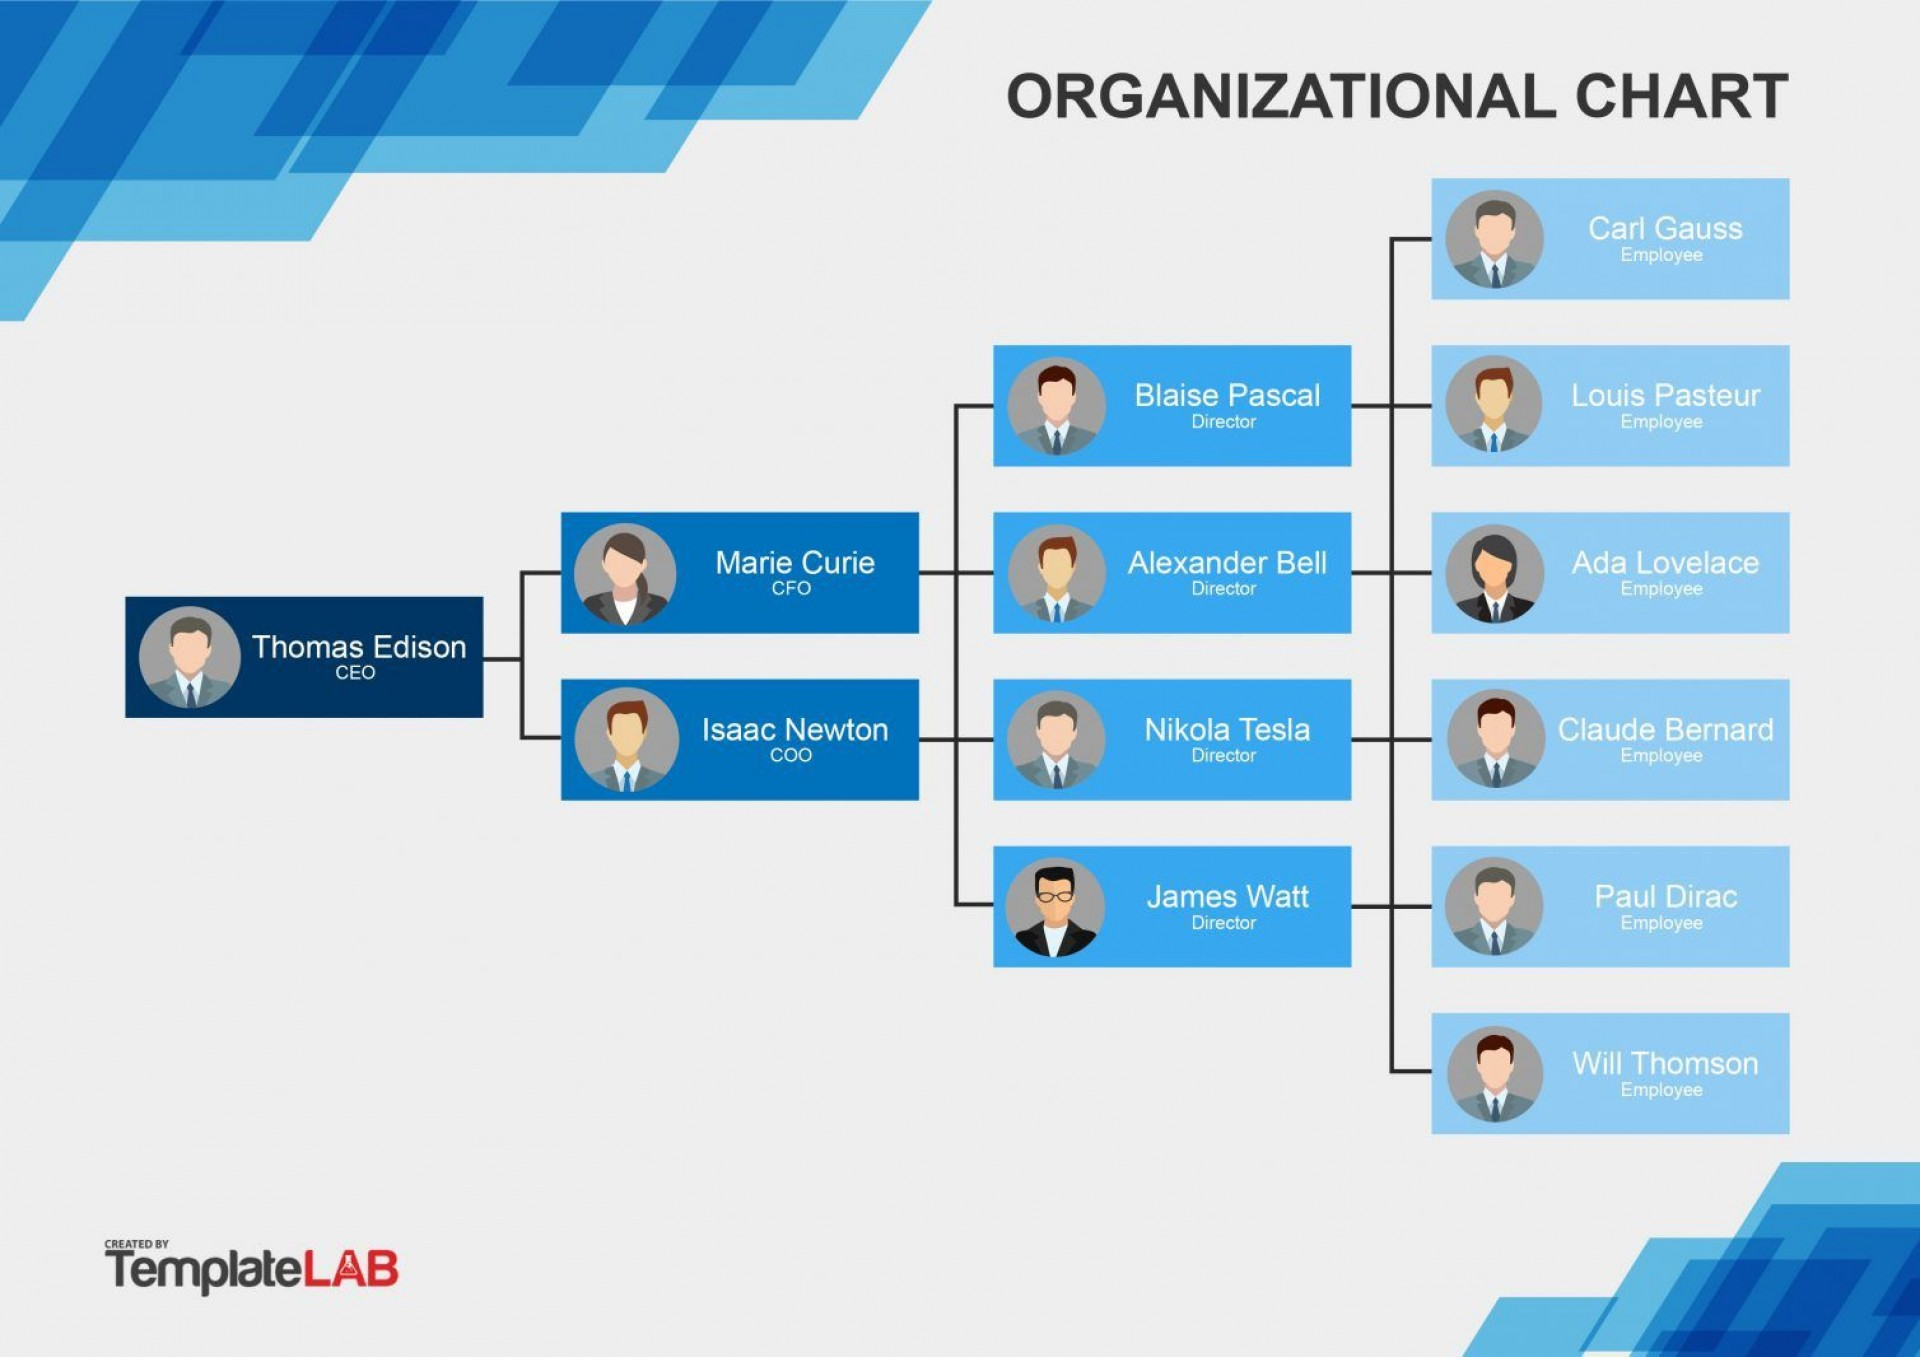 009 Formidable M Word Org Chart Template High Resolution  Organizational Free Download1920